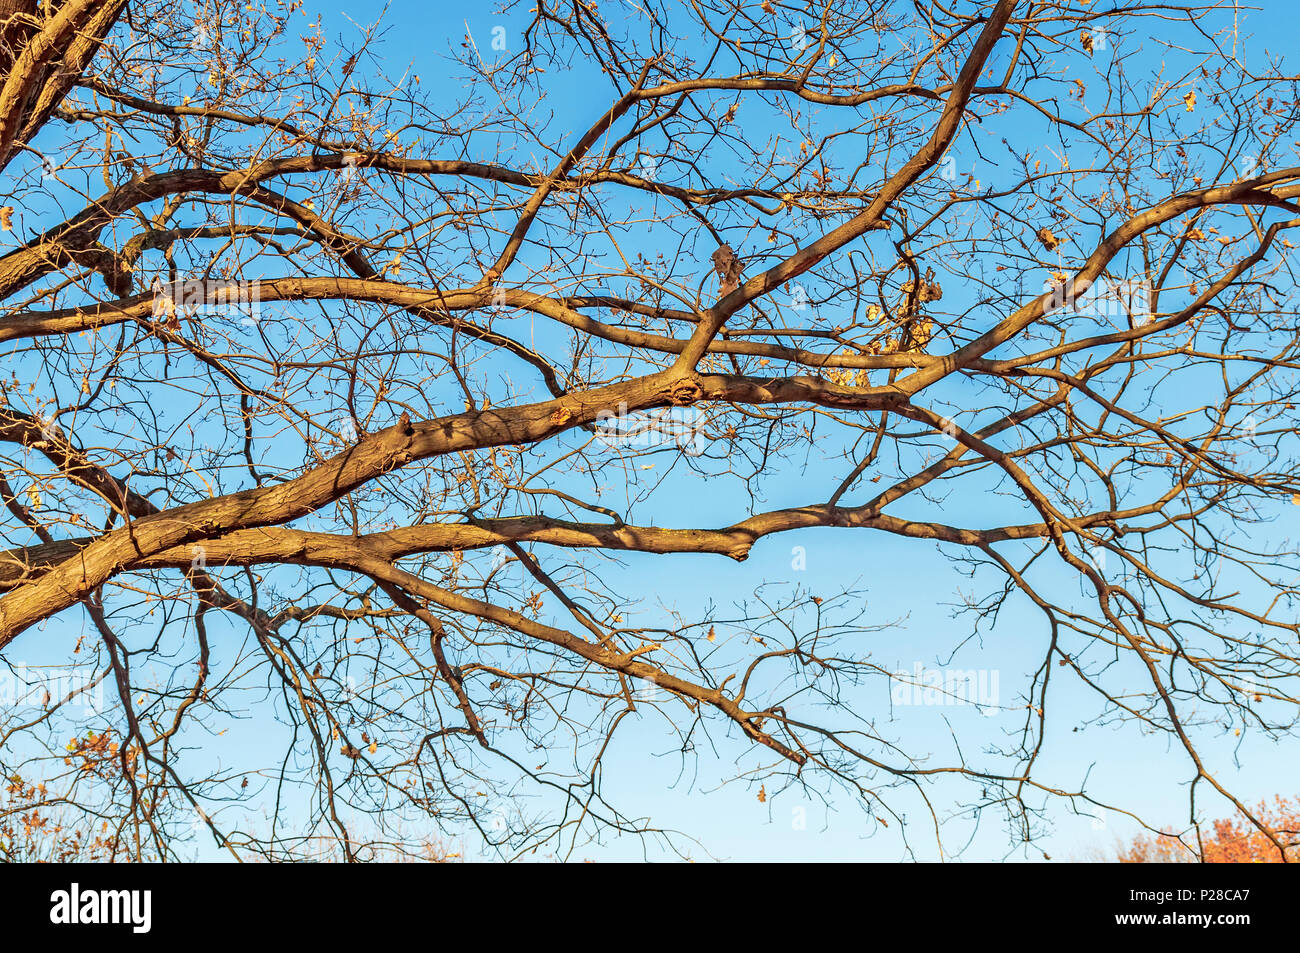 Huge tree, branches out in all directions, without leafs, blue sky, view from below - Stock Image